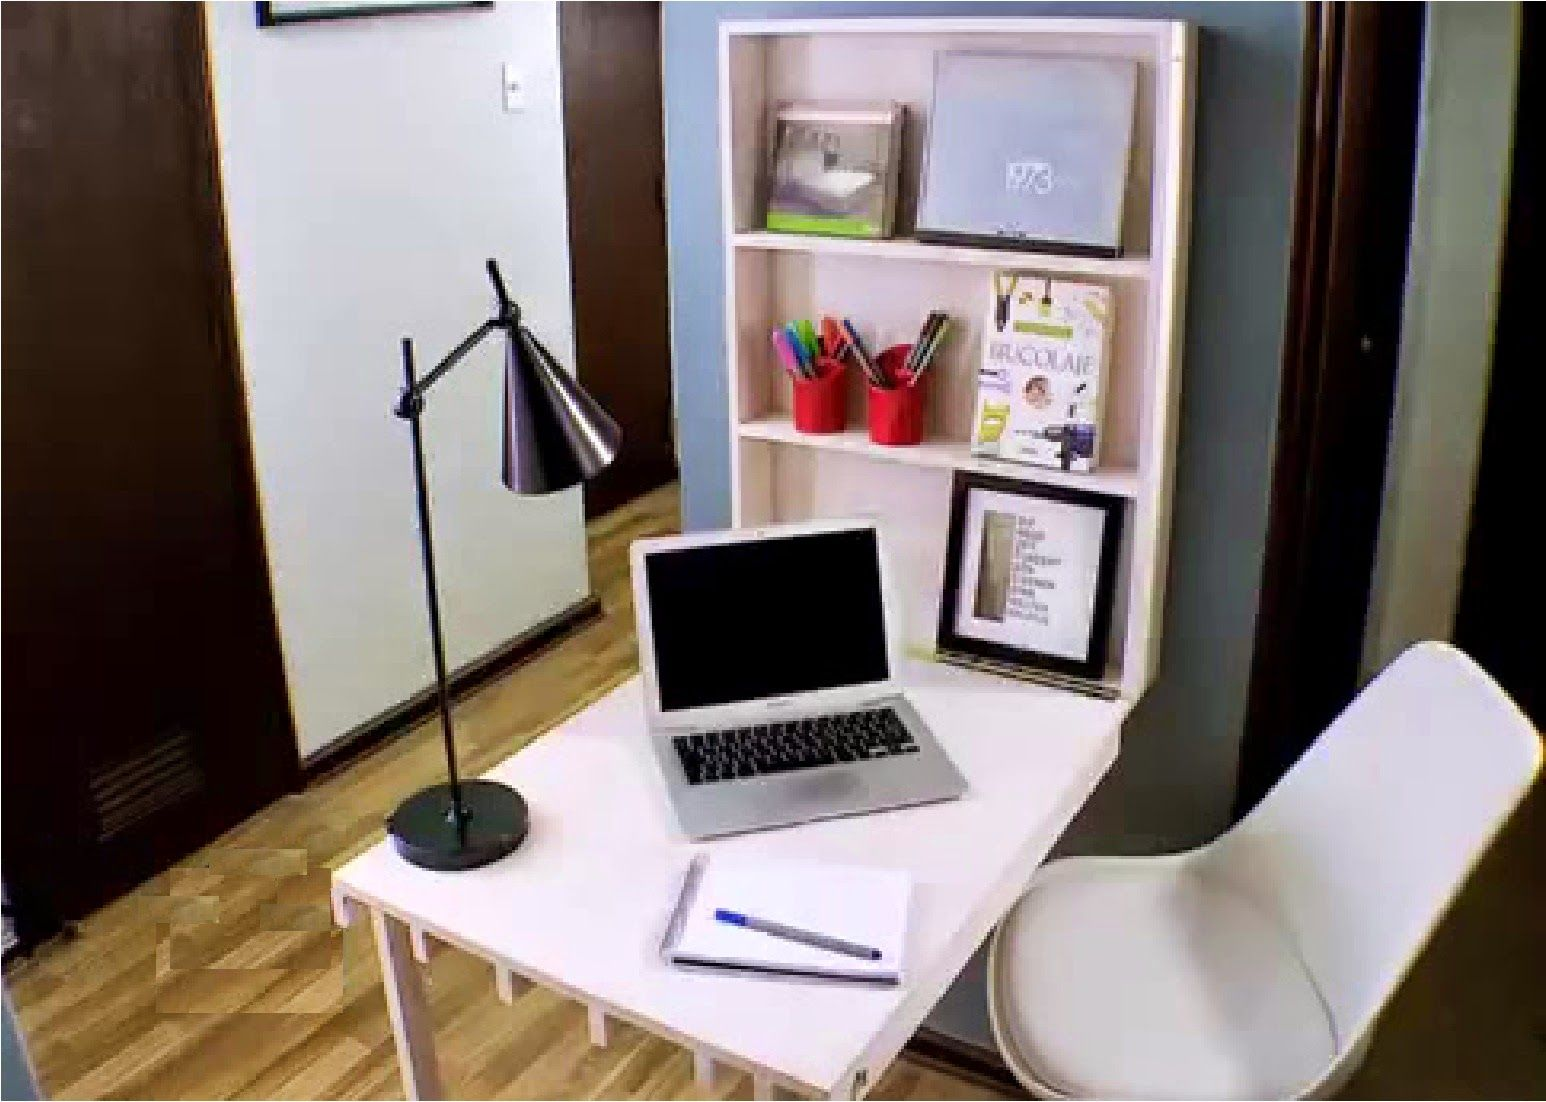 Muebles inteligentes el escritorio plegable muebles for Muebles inteligentes